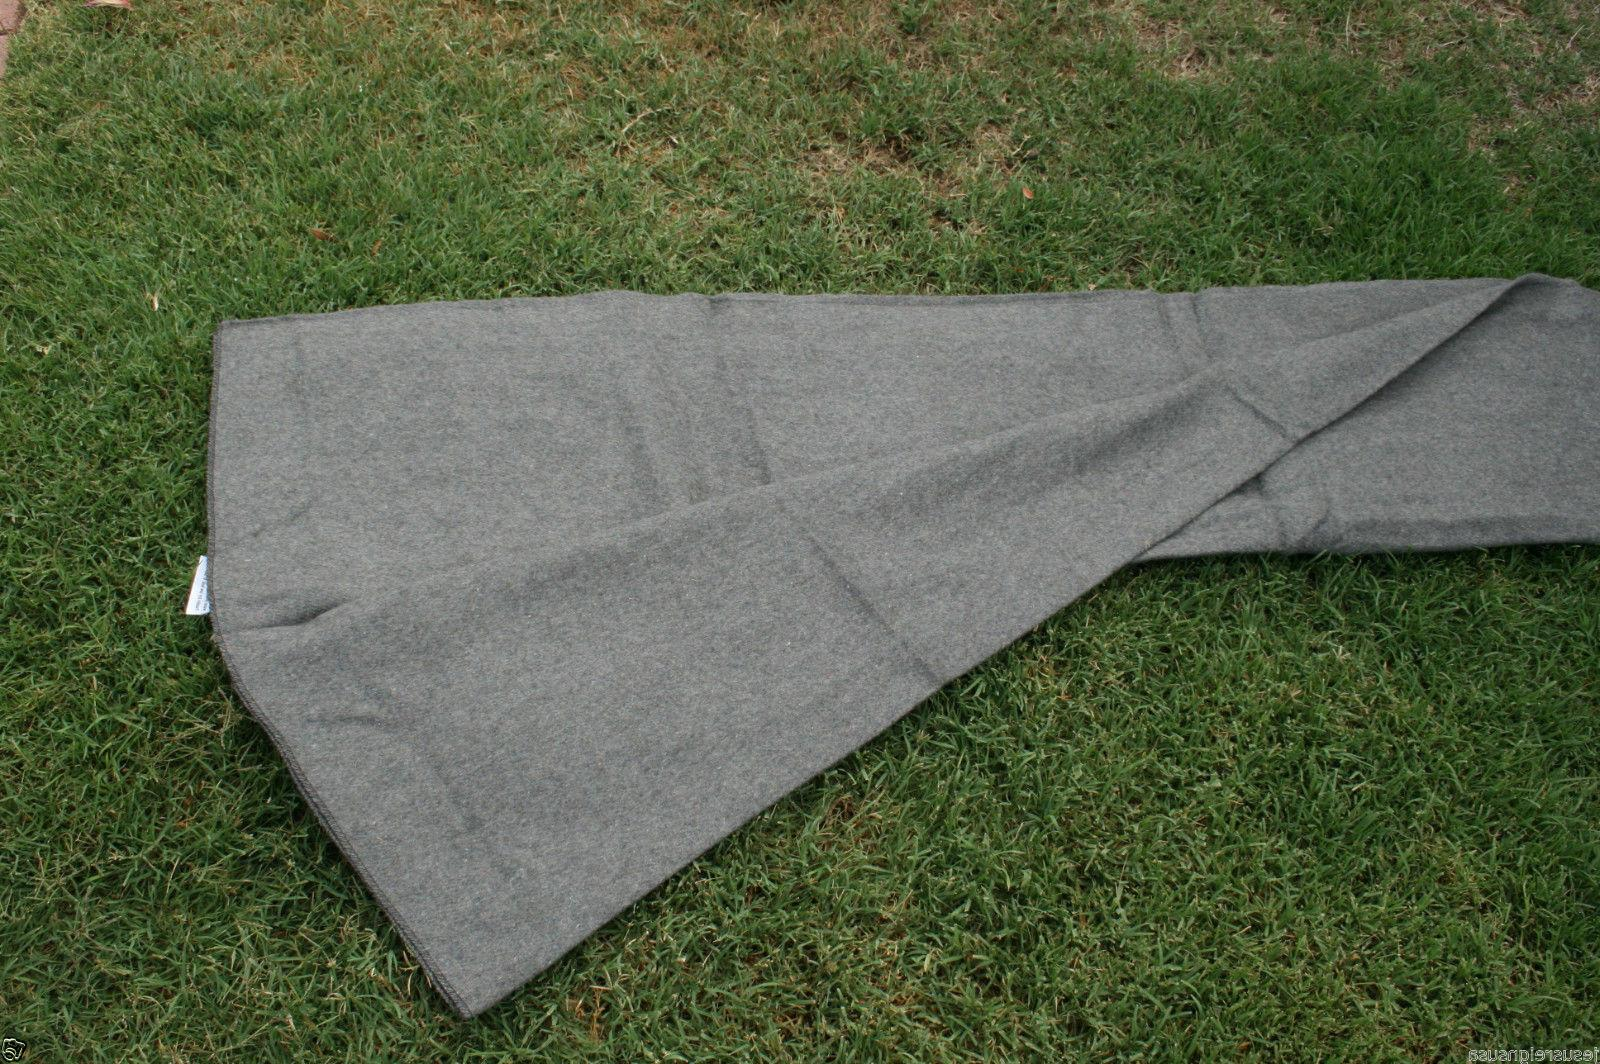 4+ Blanket Military Army Emergency Survival Camping